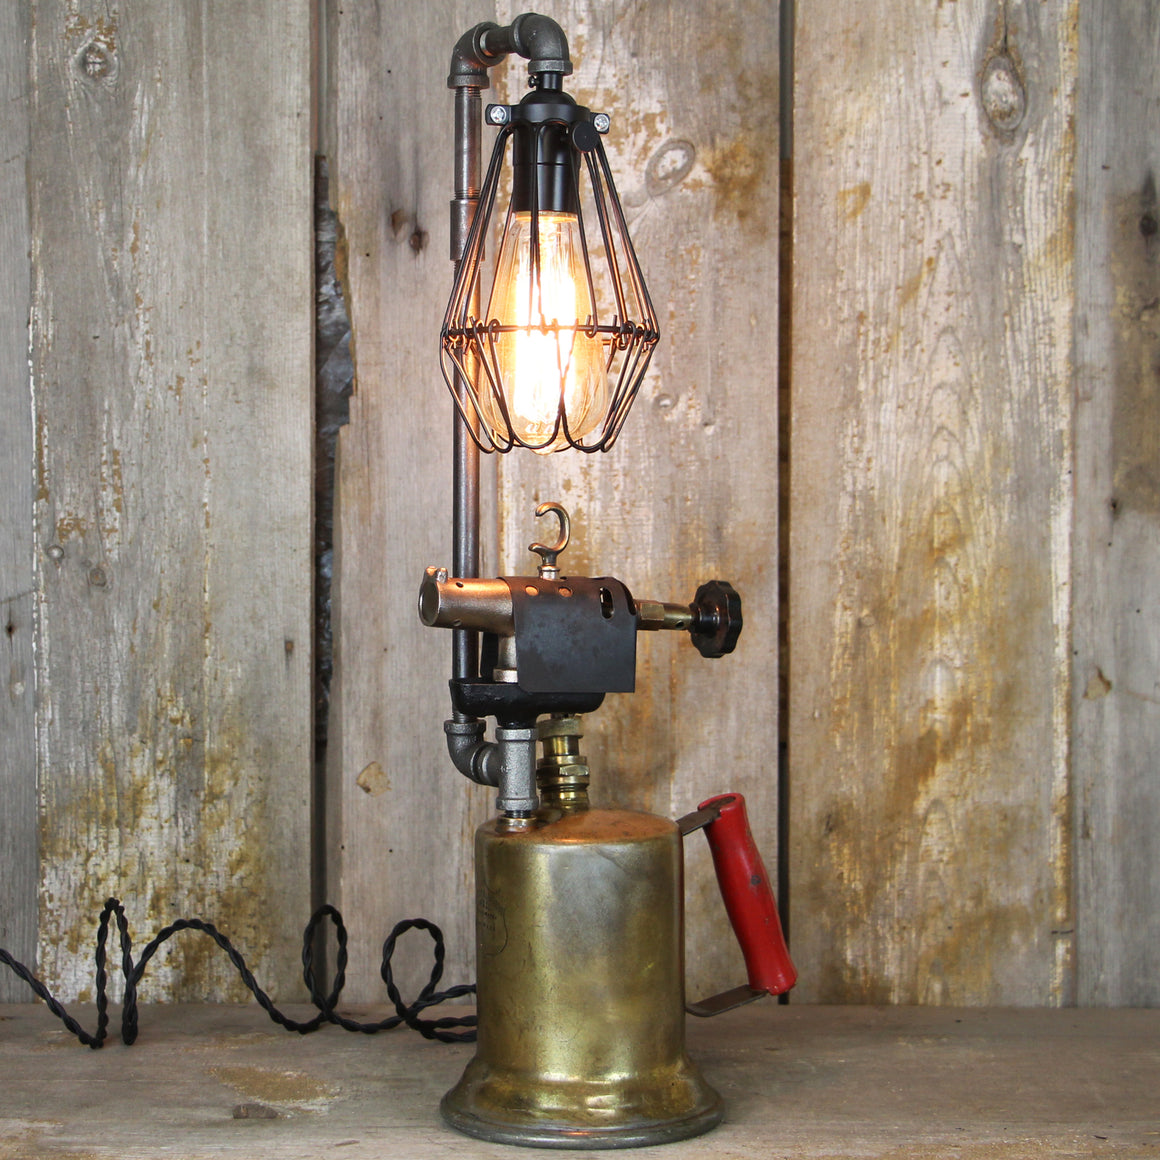 Steampunk Brass Torch Table Lamp - A Great piece of Steampunk lighting #1977 - The Lighting Works